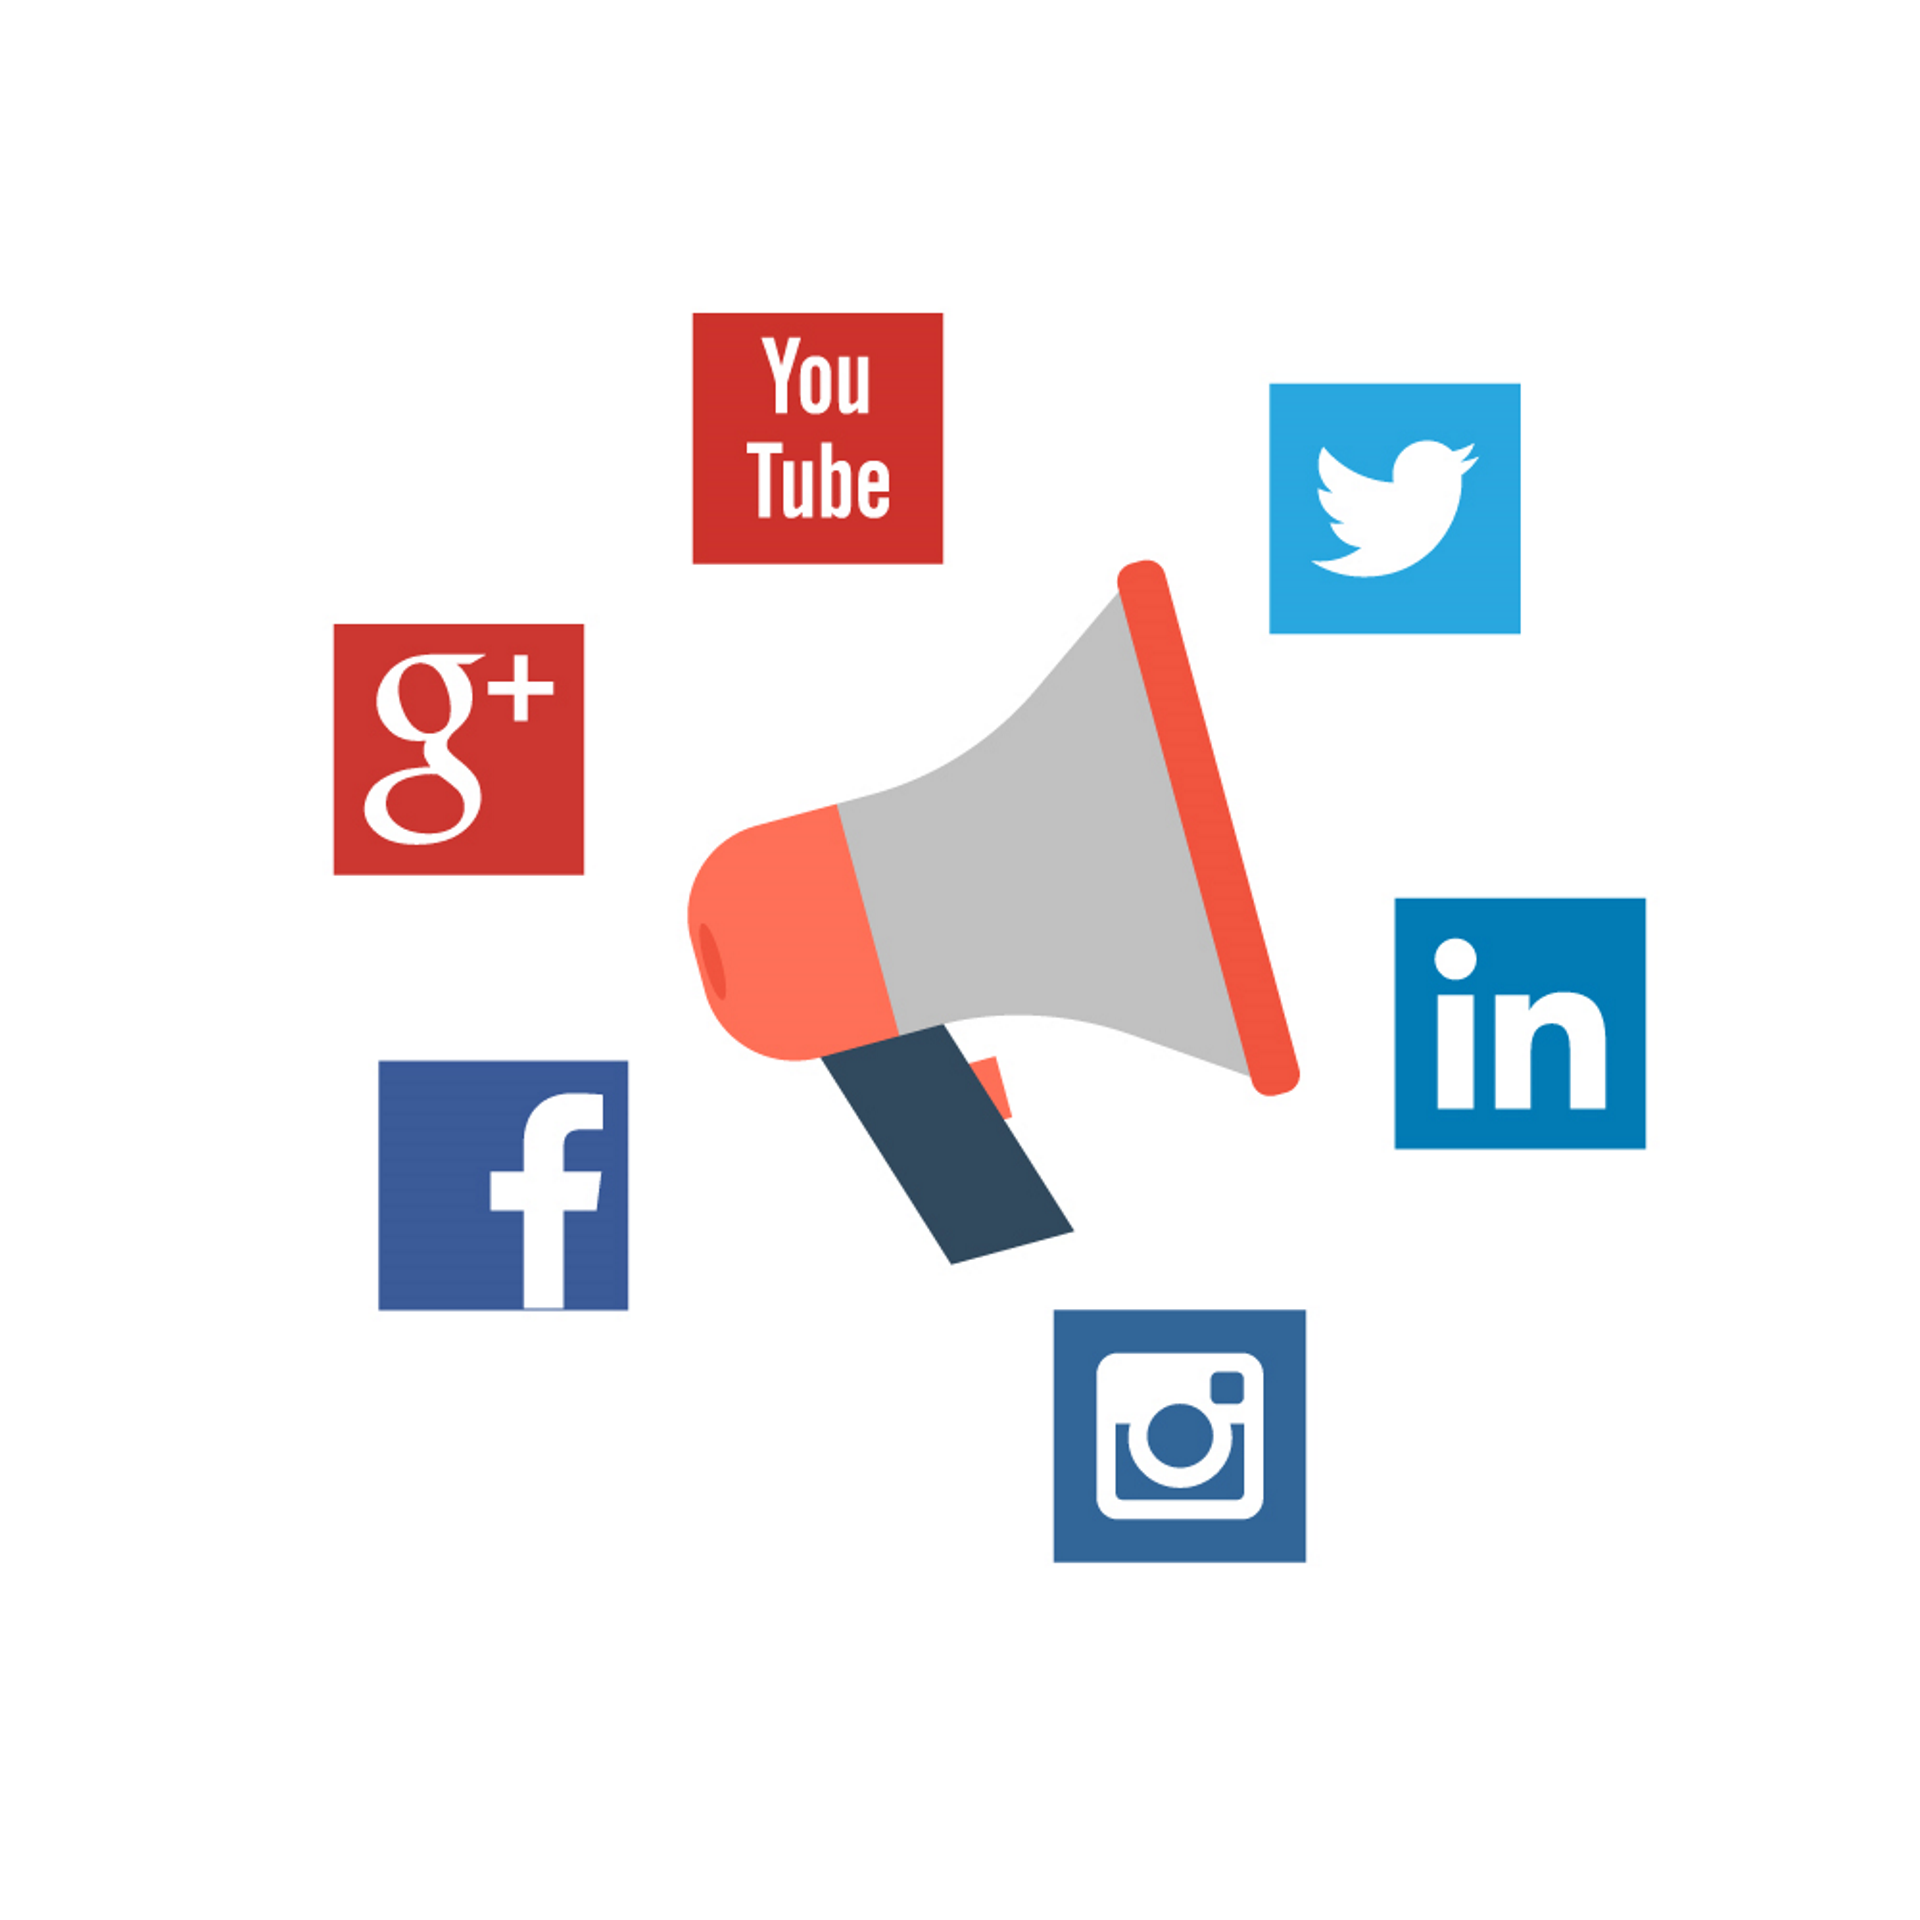 Redes Sociales: 6 Social Media Must-Have Trends - Social Media Explorer